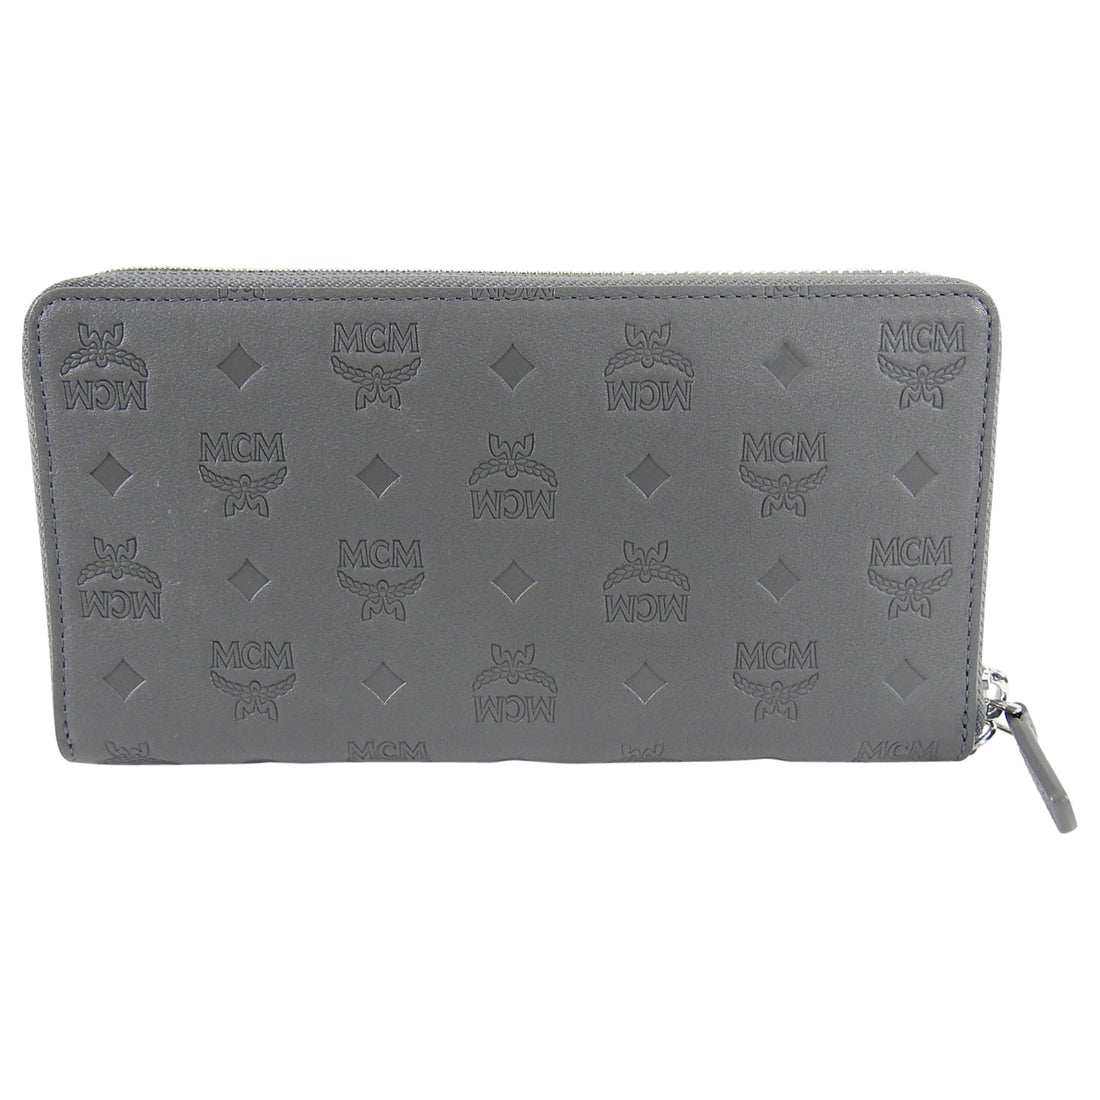 MCM Grey Leather Monogram Logo Embossed Continental Wallet